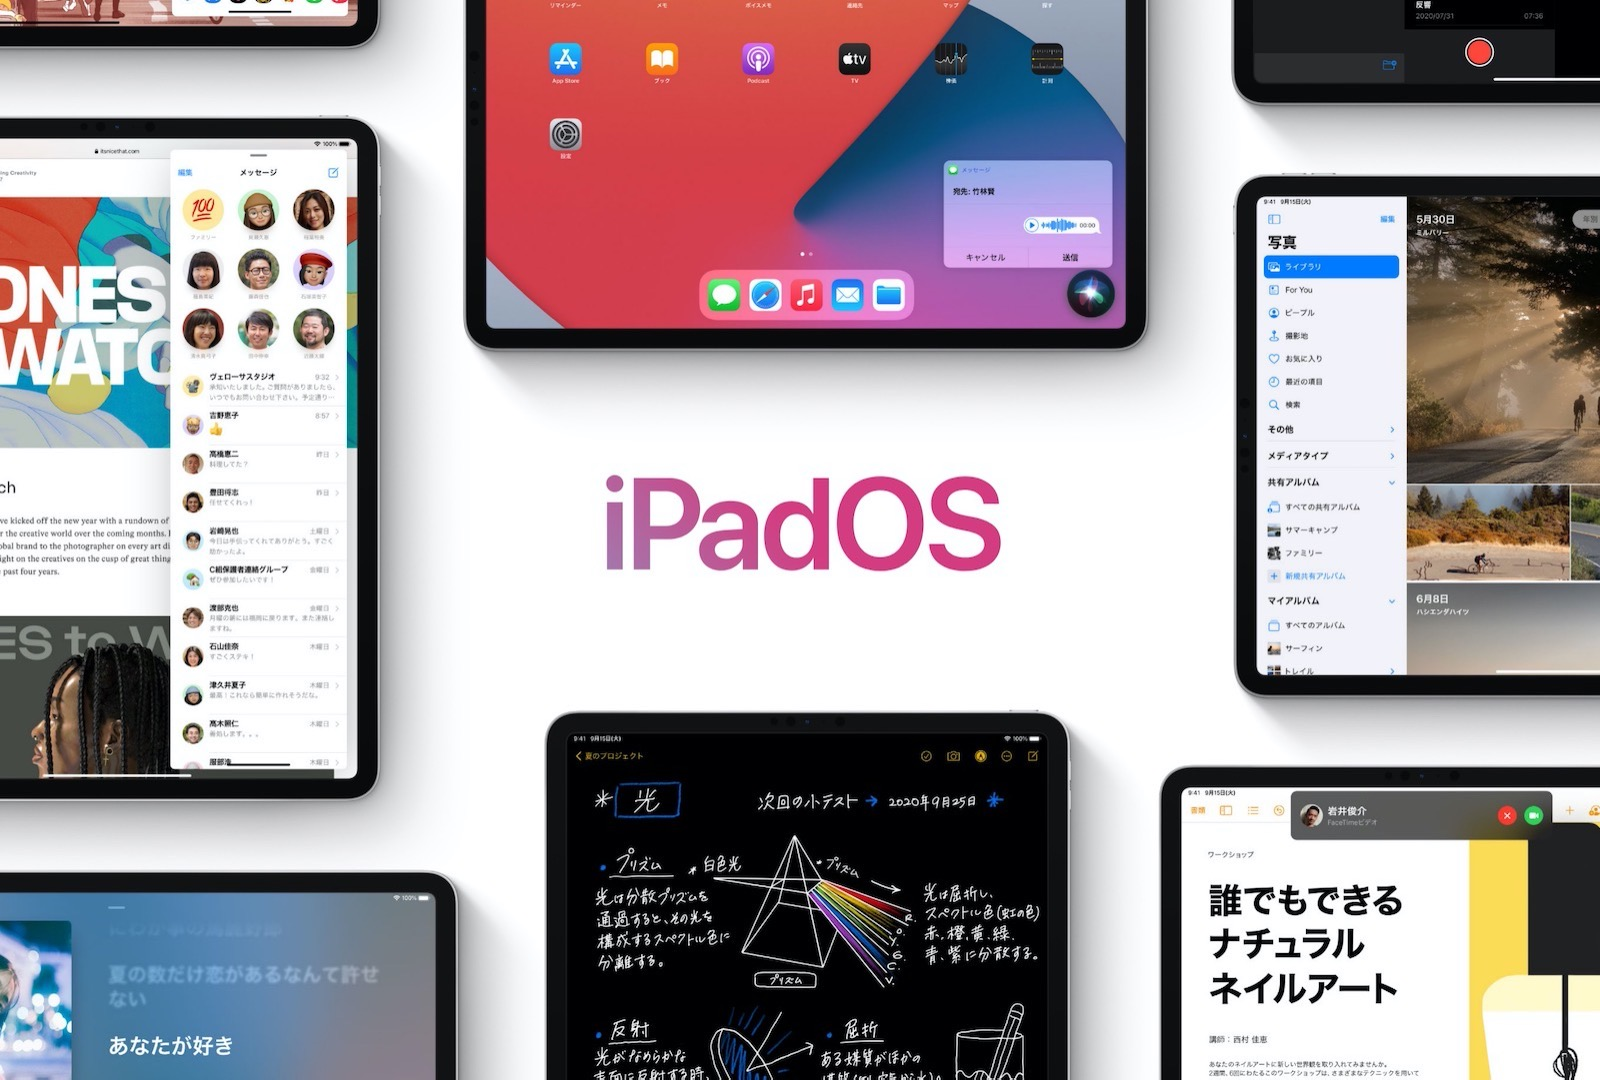 Ipados 14 official release